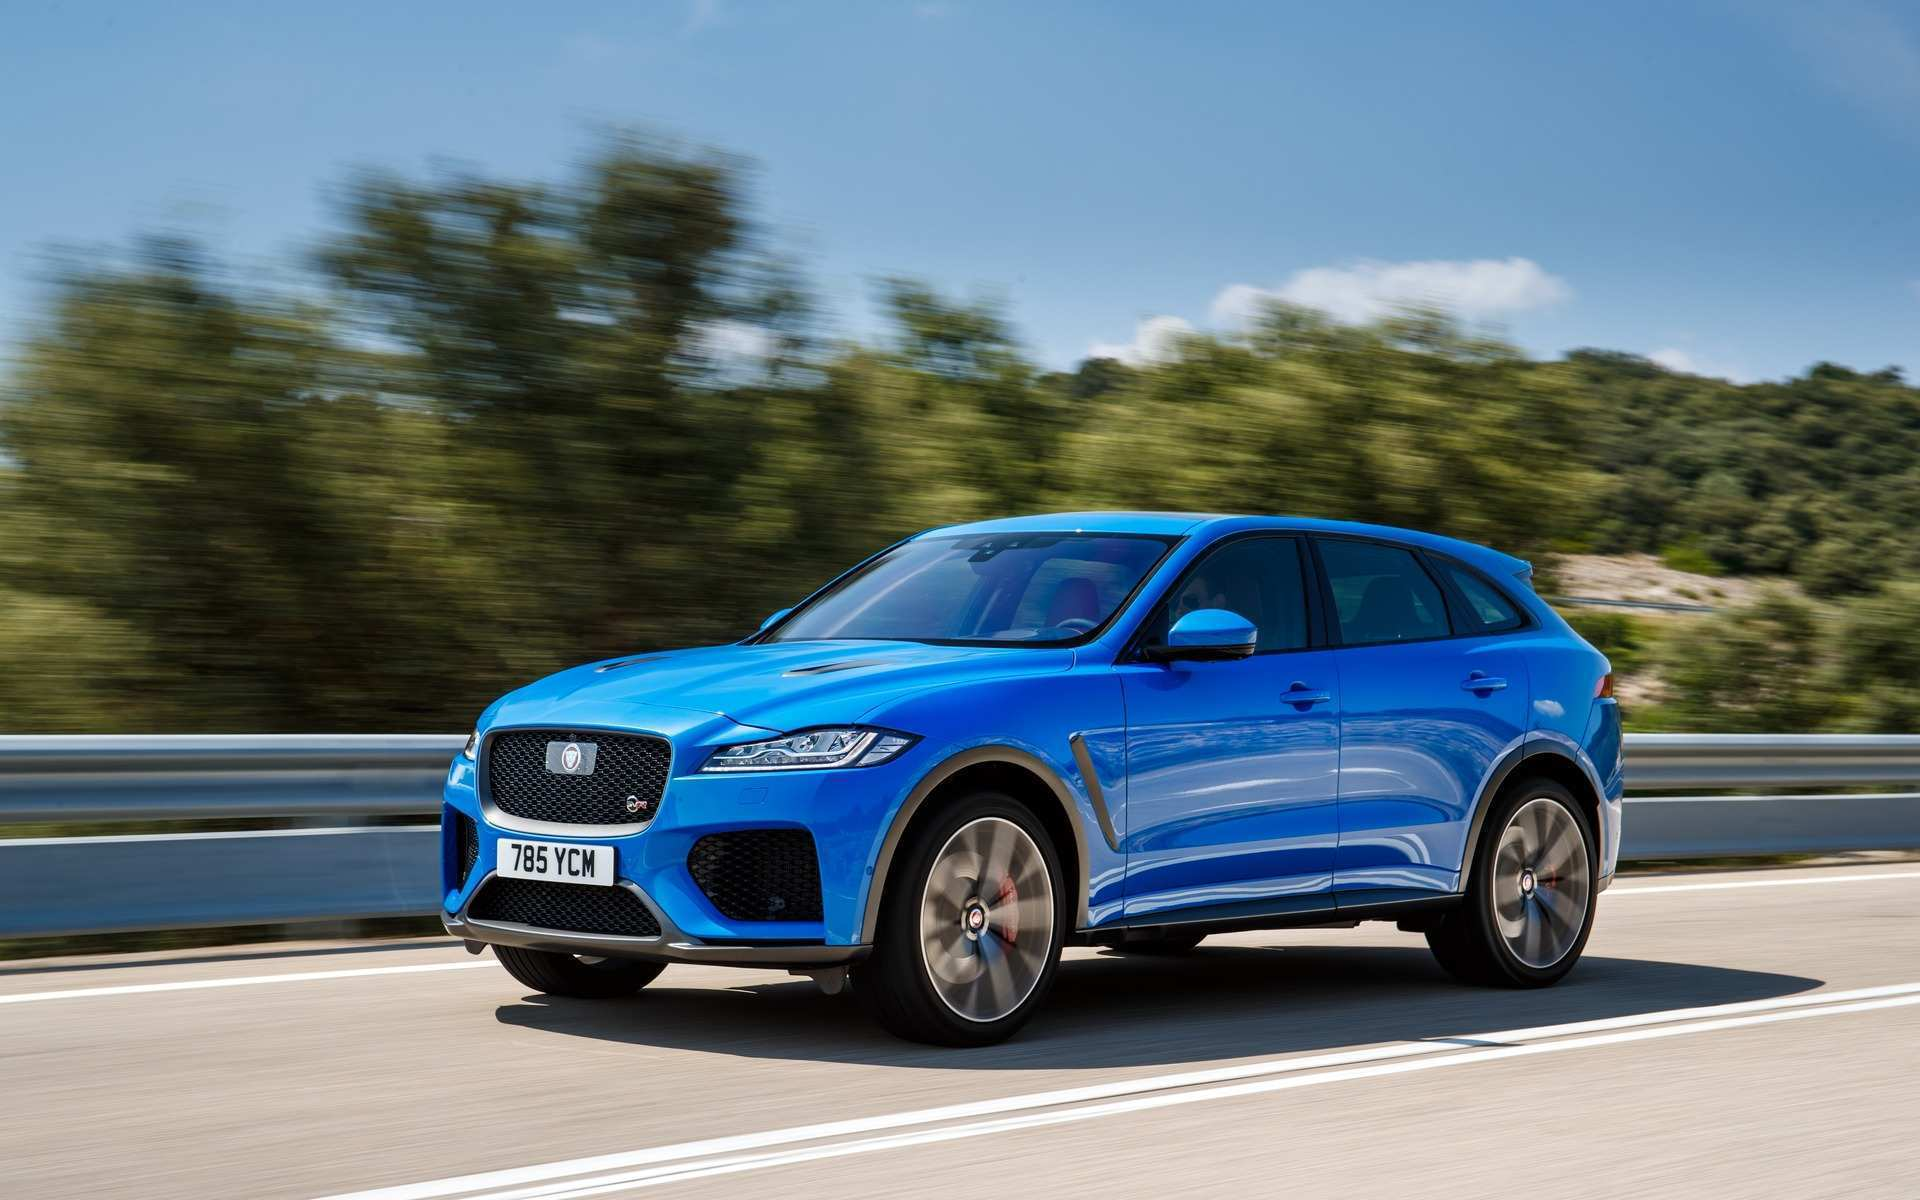 96 The Best Jaguar F Pace Svr 2020 Performance